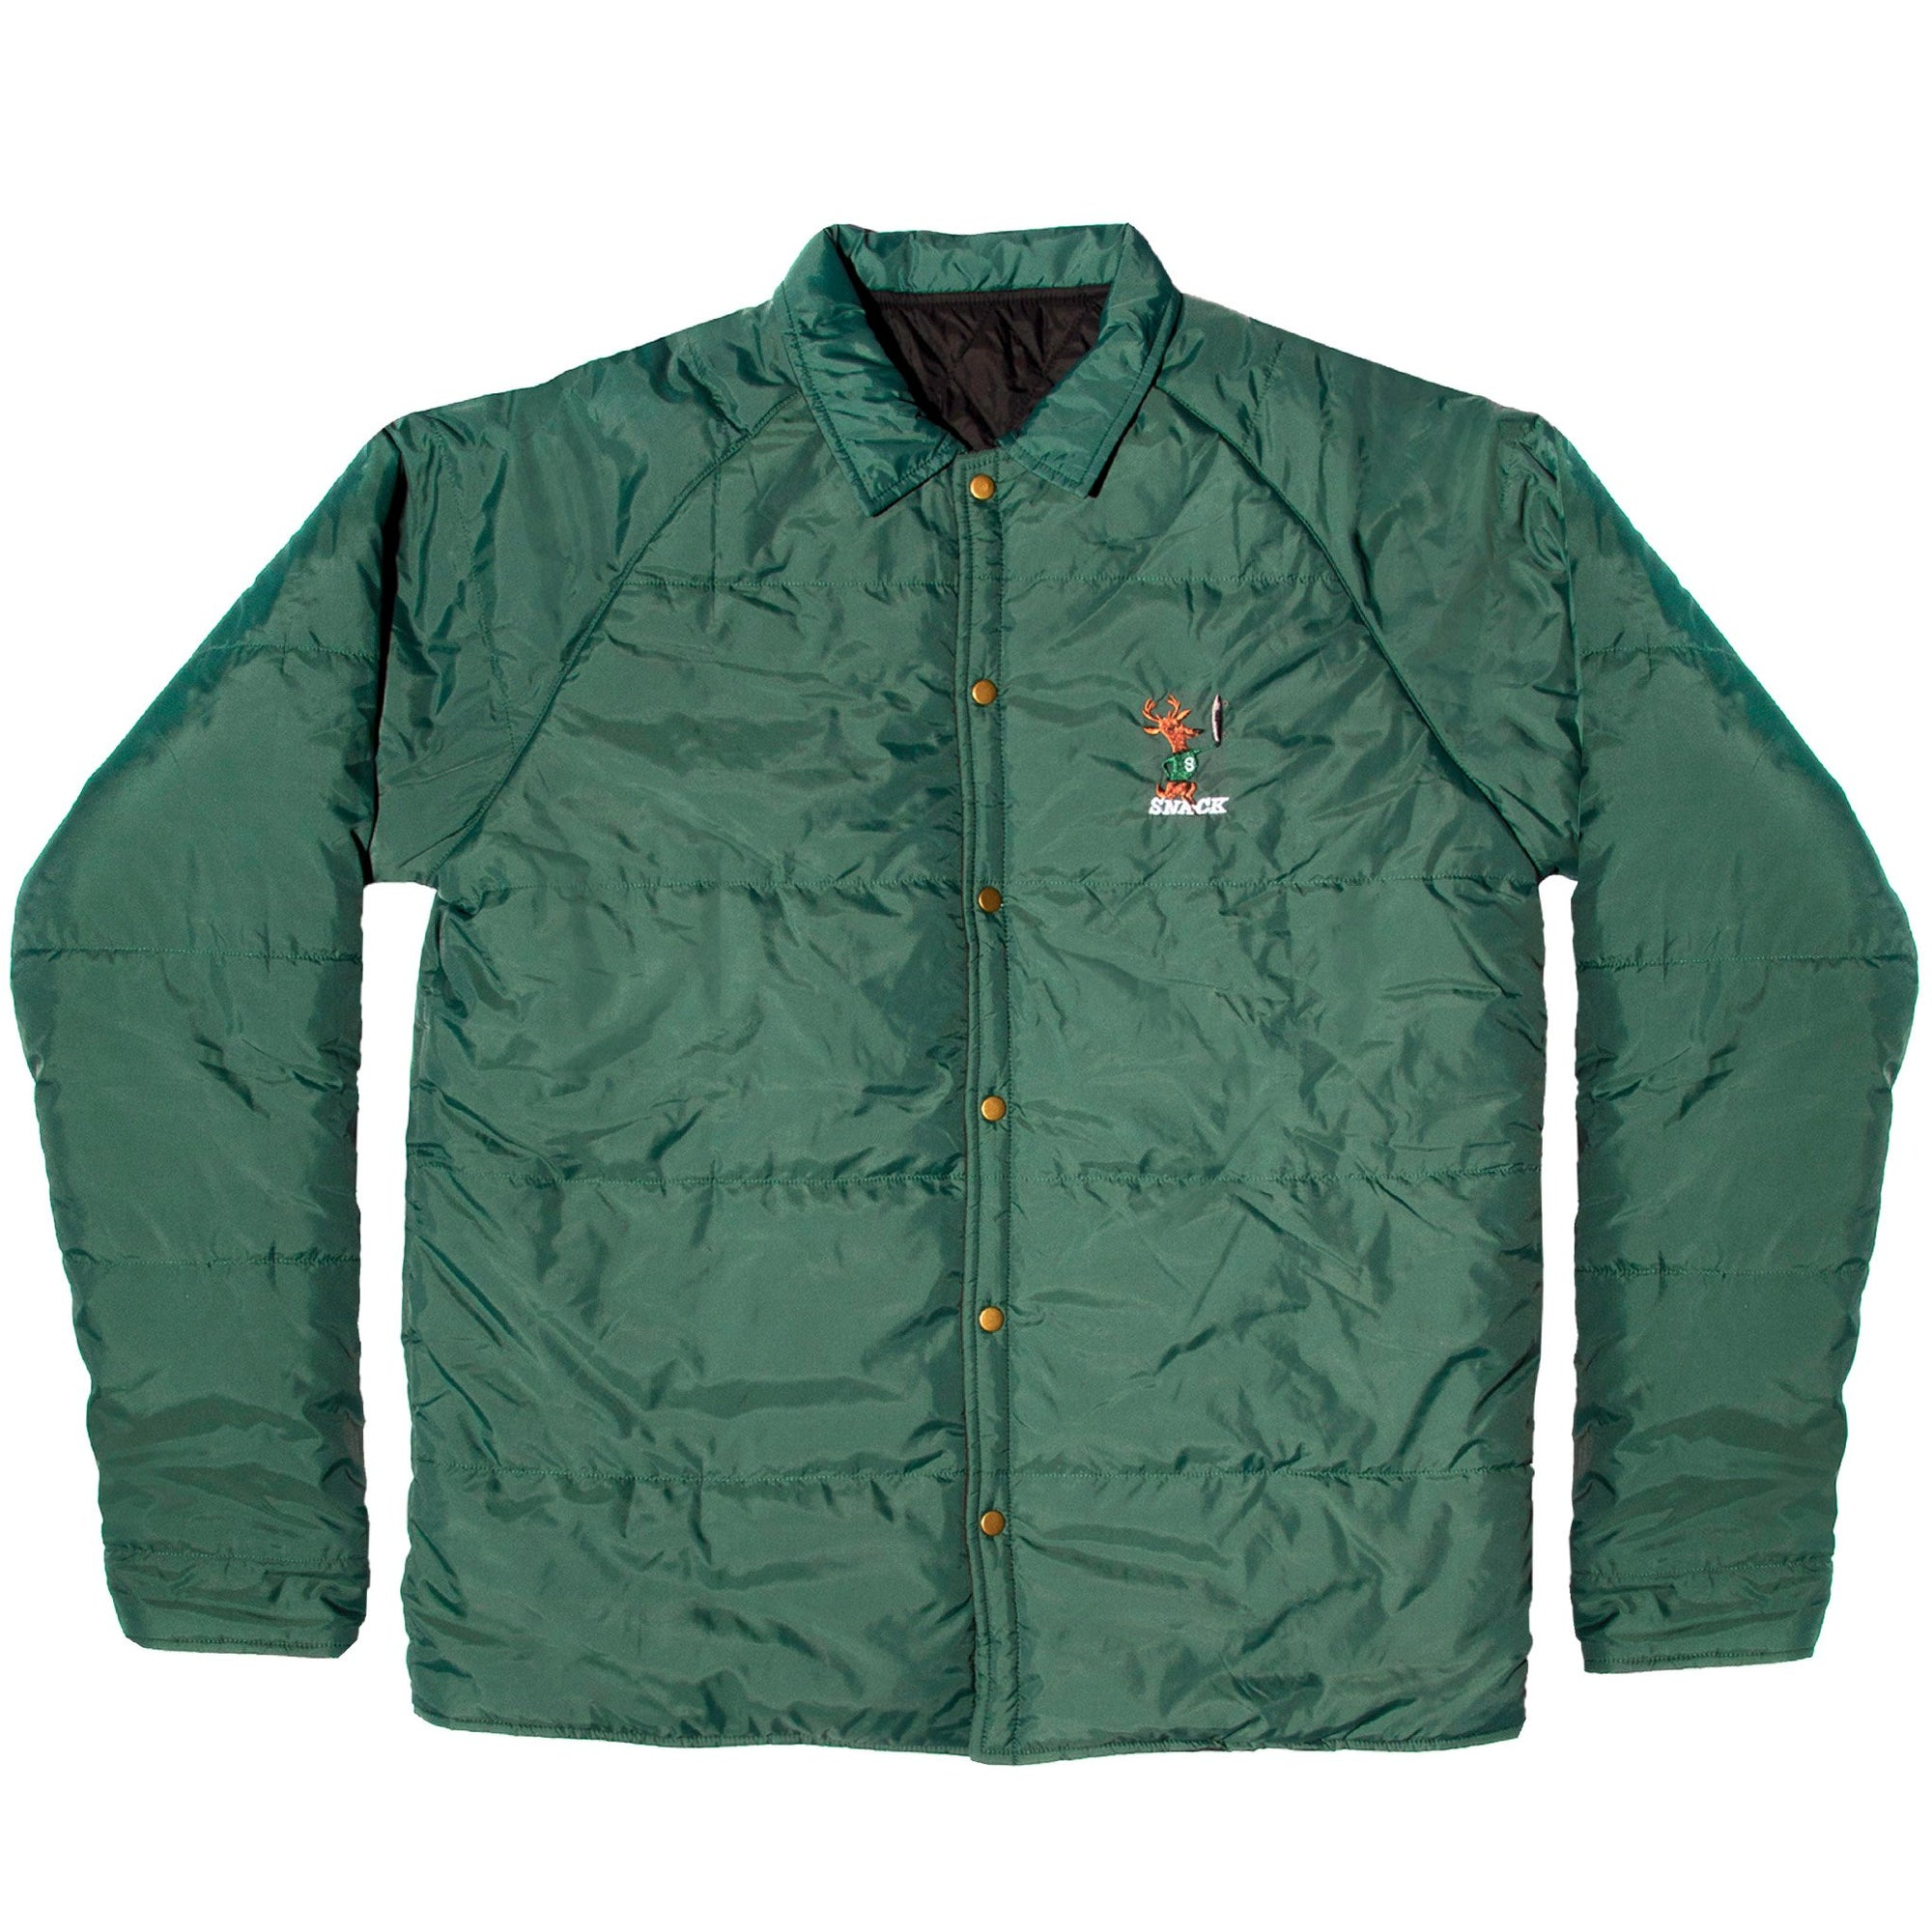 Snack Hardwood Reversible Puff Jacket Green/Black